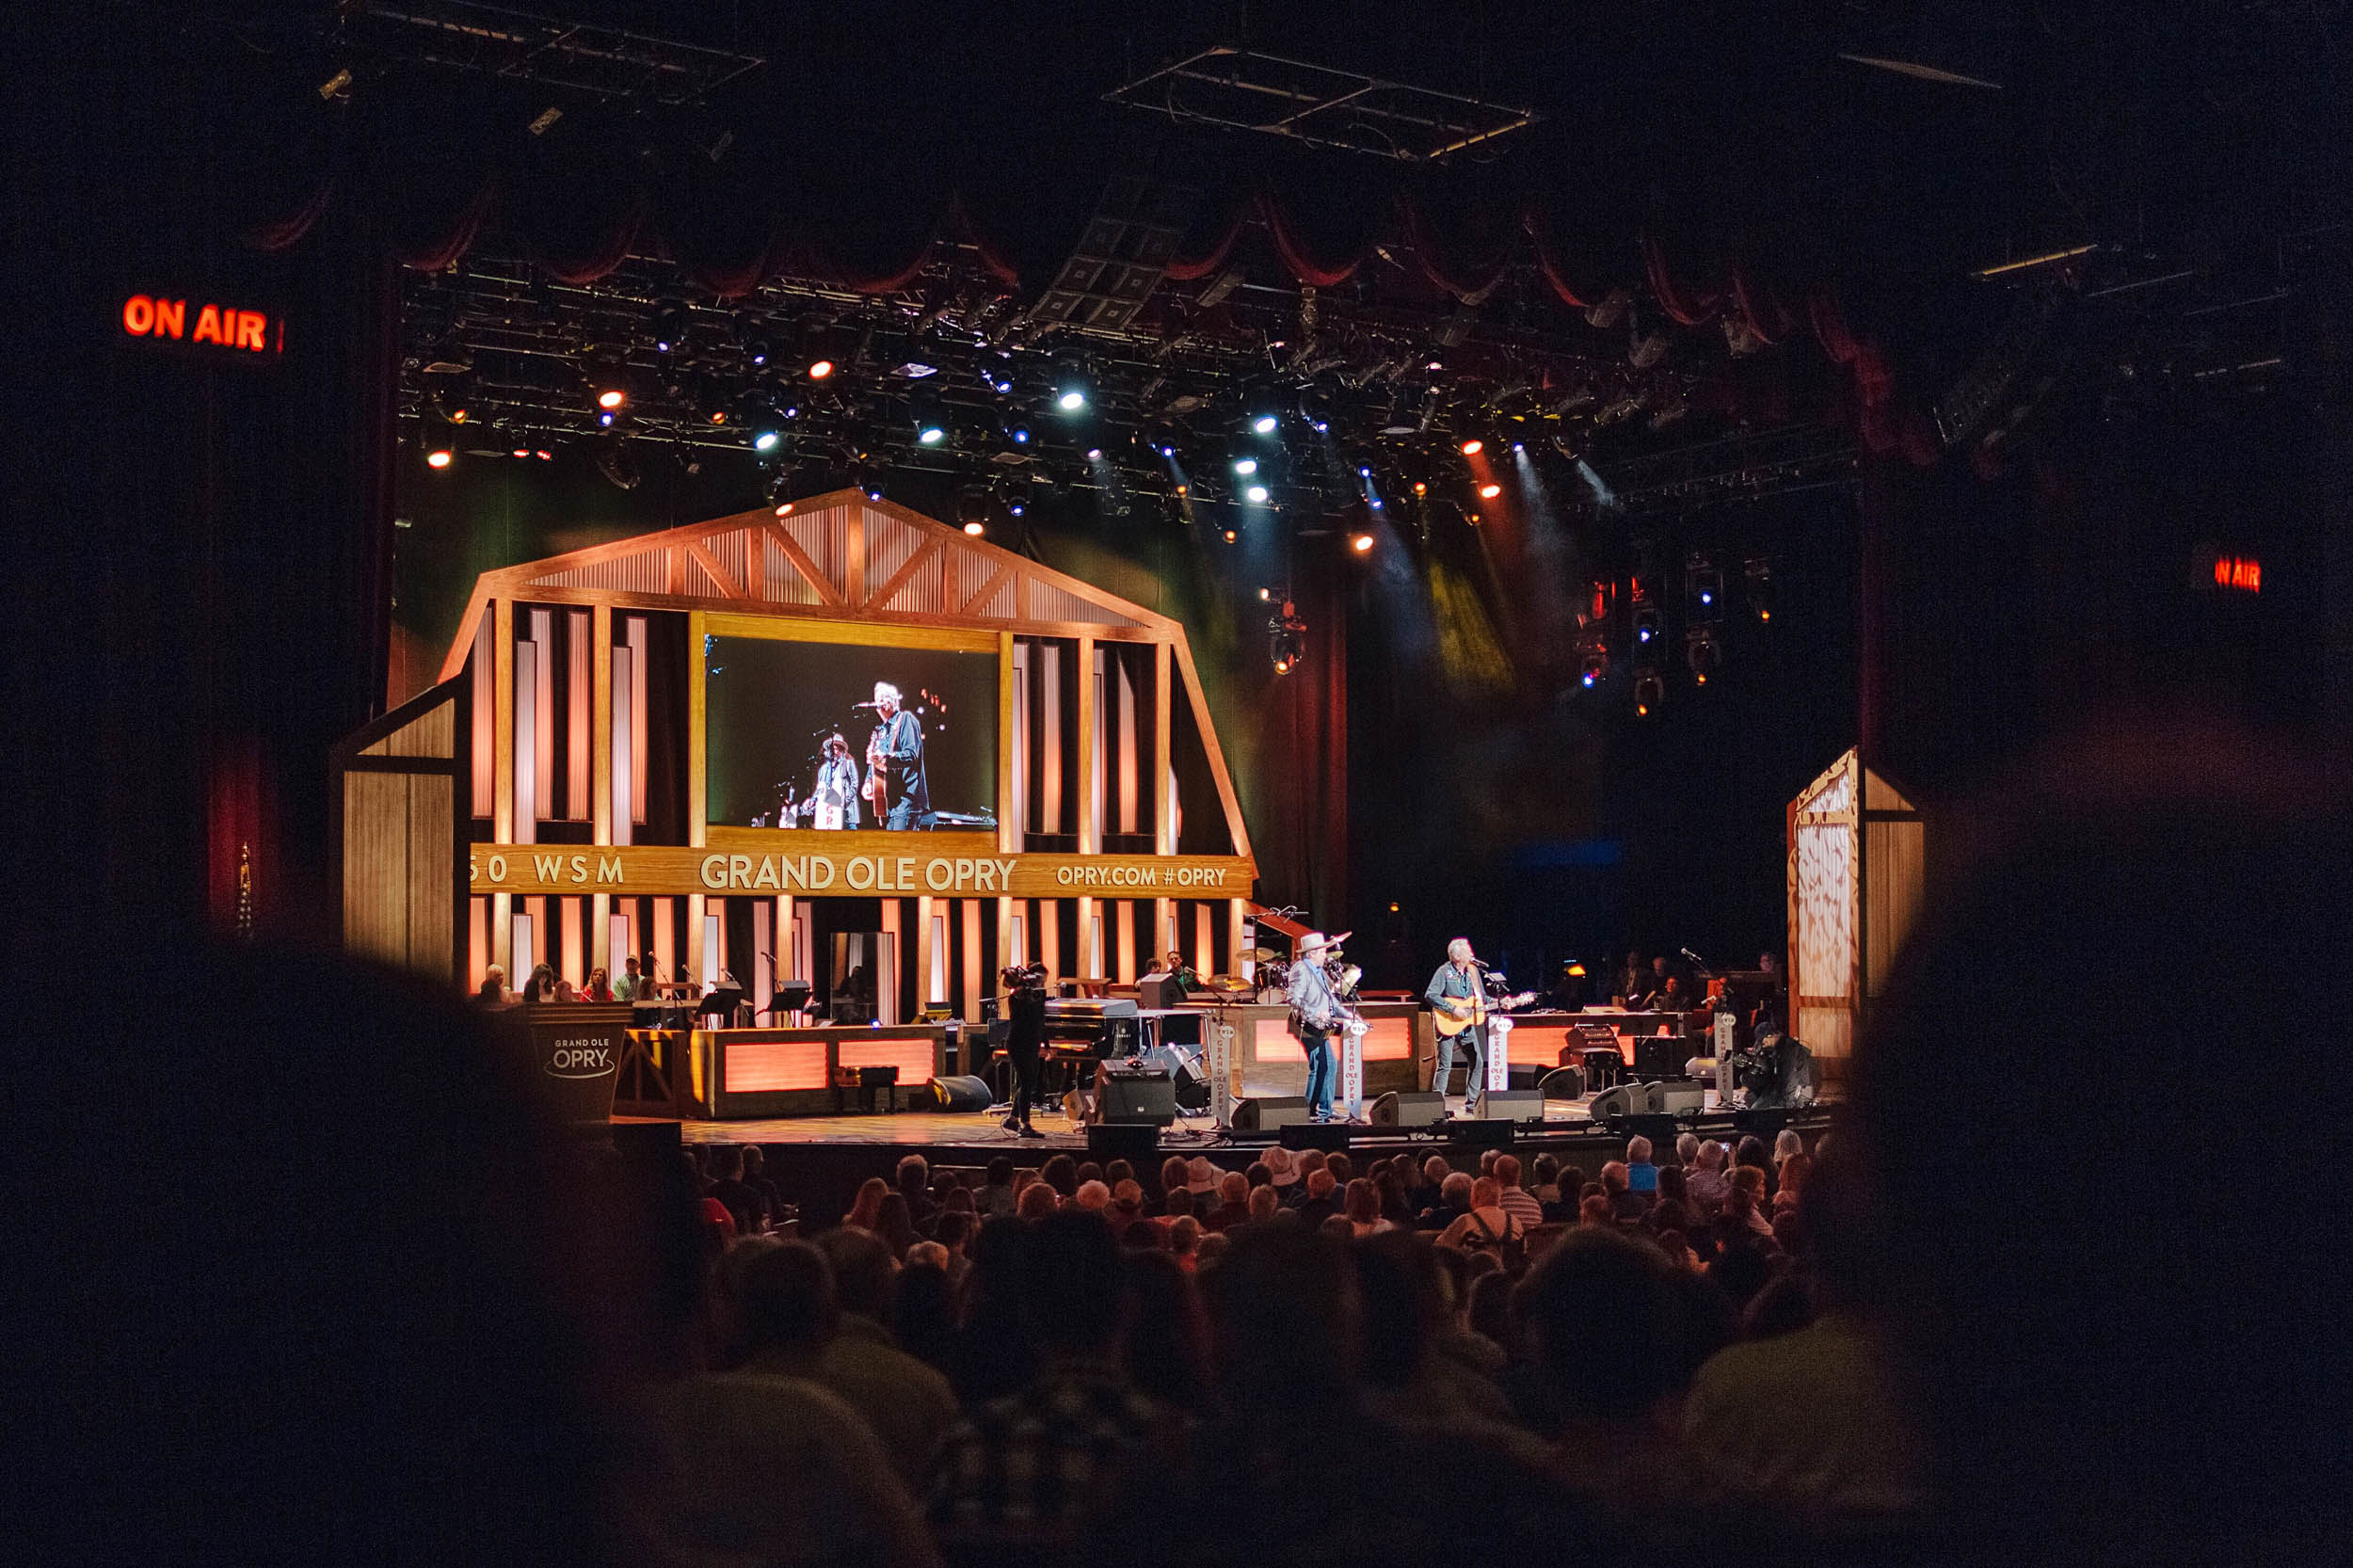 Tommy Emmanuel and Jerry Douglas performing together at the Grand Ole Opry in Nashville